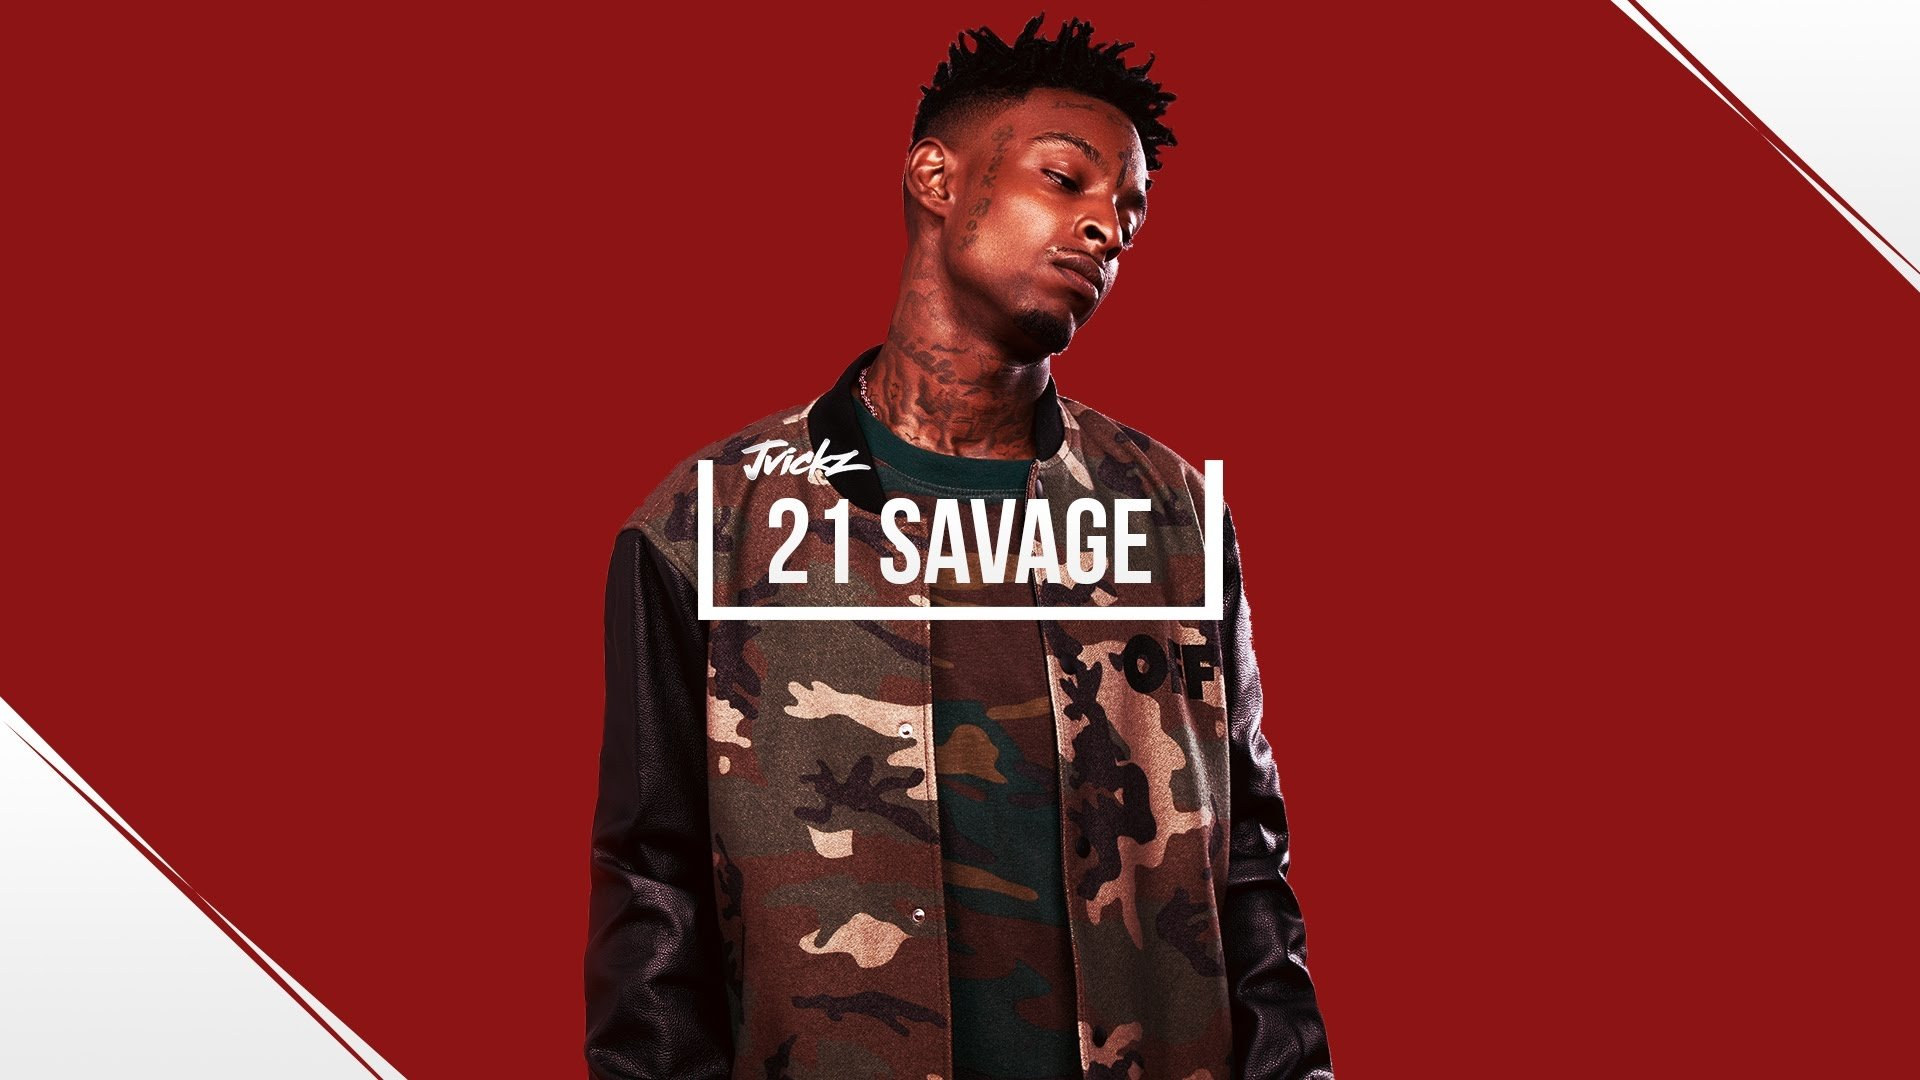 21 savage hd wallpaper background image 1920x1080 id 884262